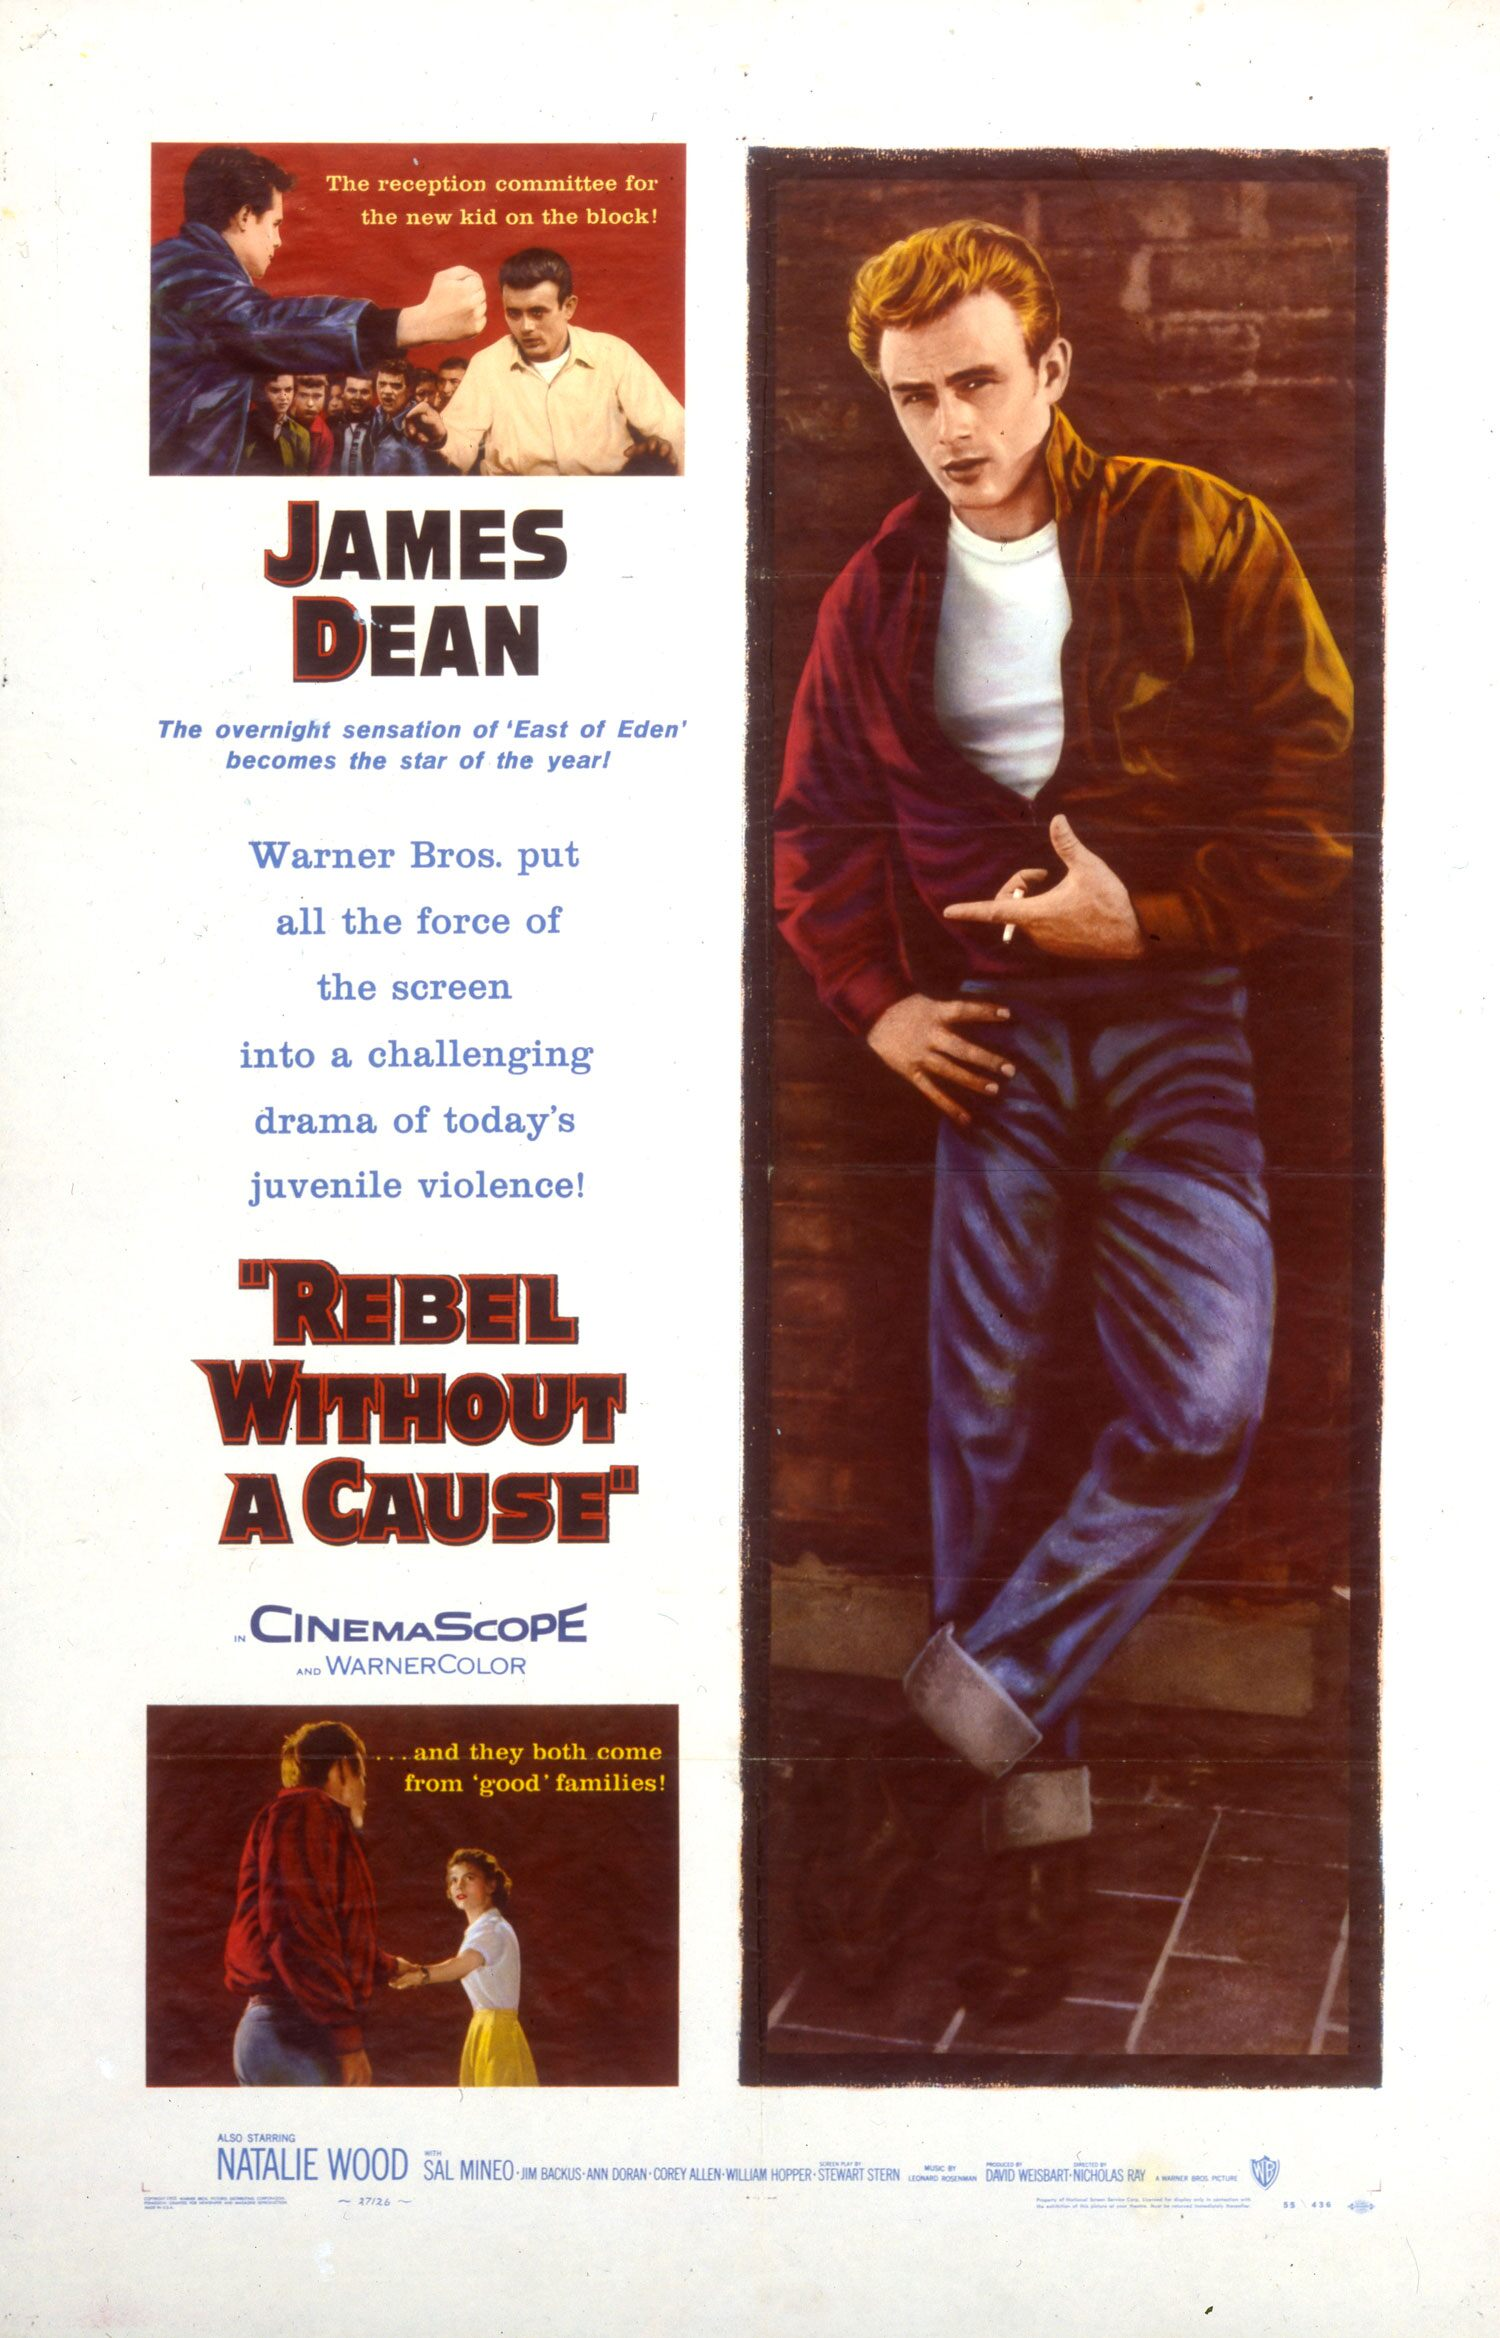 James Dean's immediate stardom after East of Eden became a major selling point when Rebel without a Cause opened in theaters later the same year.